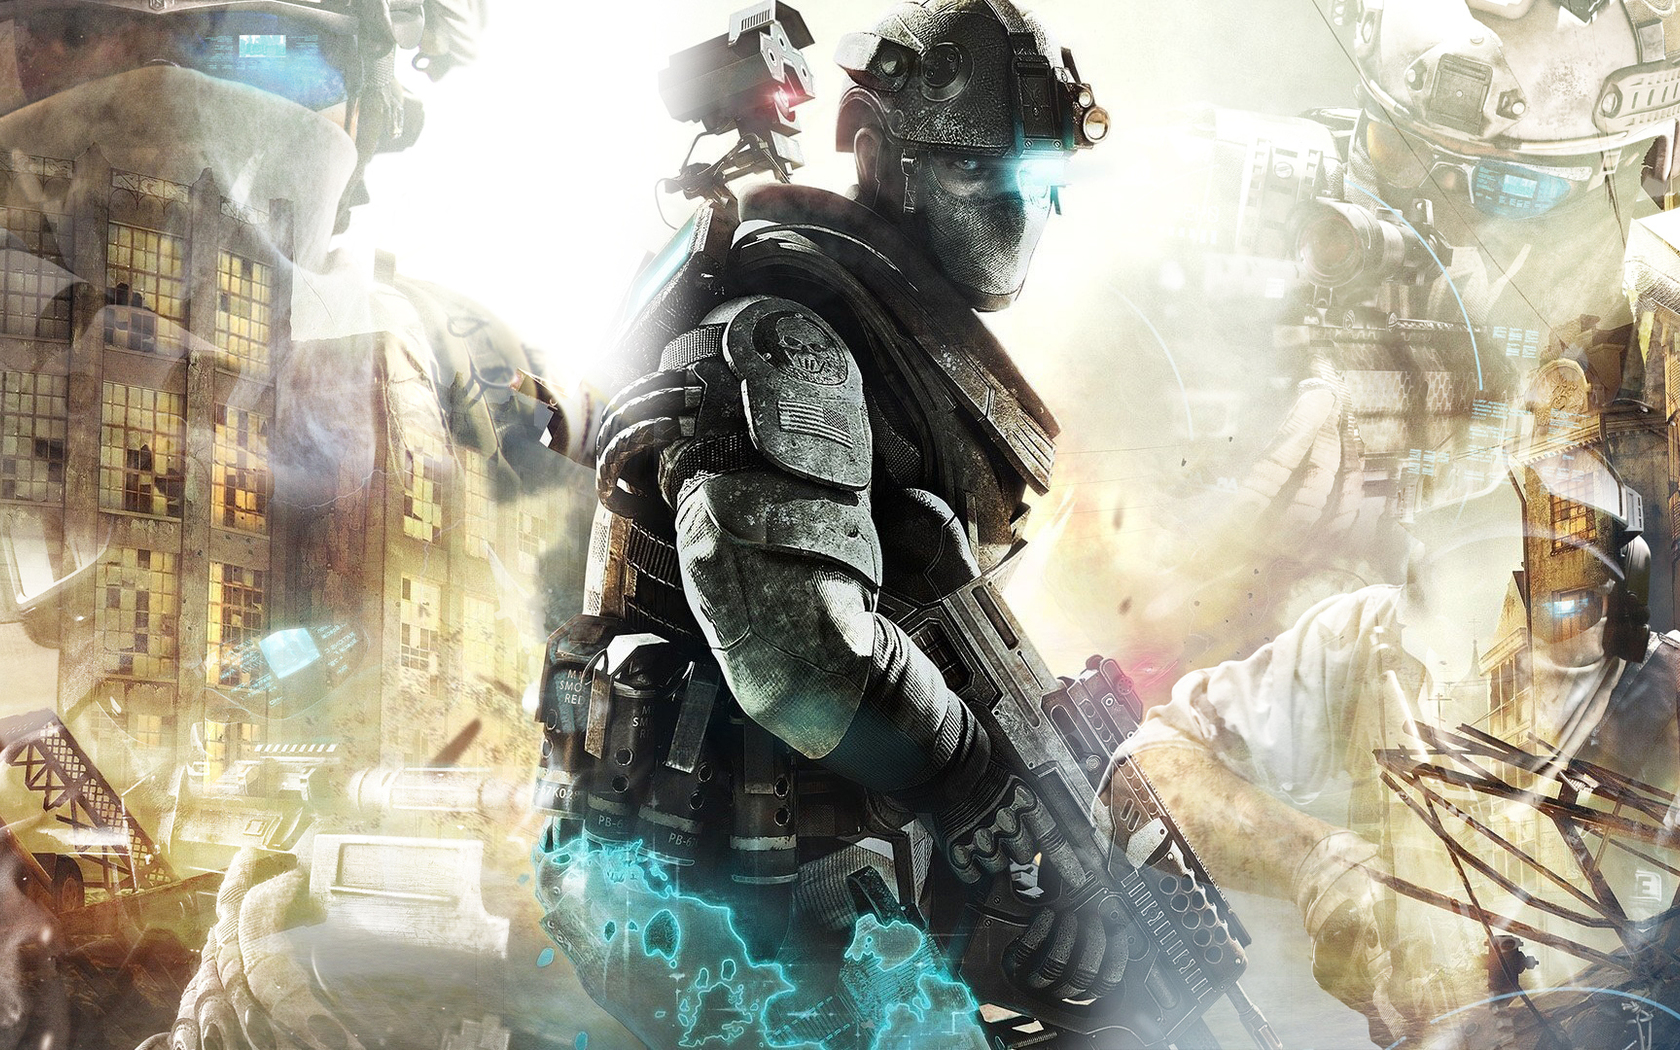 Ghost Recon Future Soldier Hd Wallpaper 12 Hd Ghost Recon Future Soldier Wallpapers